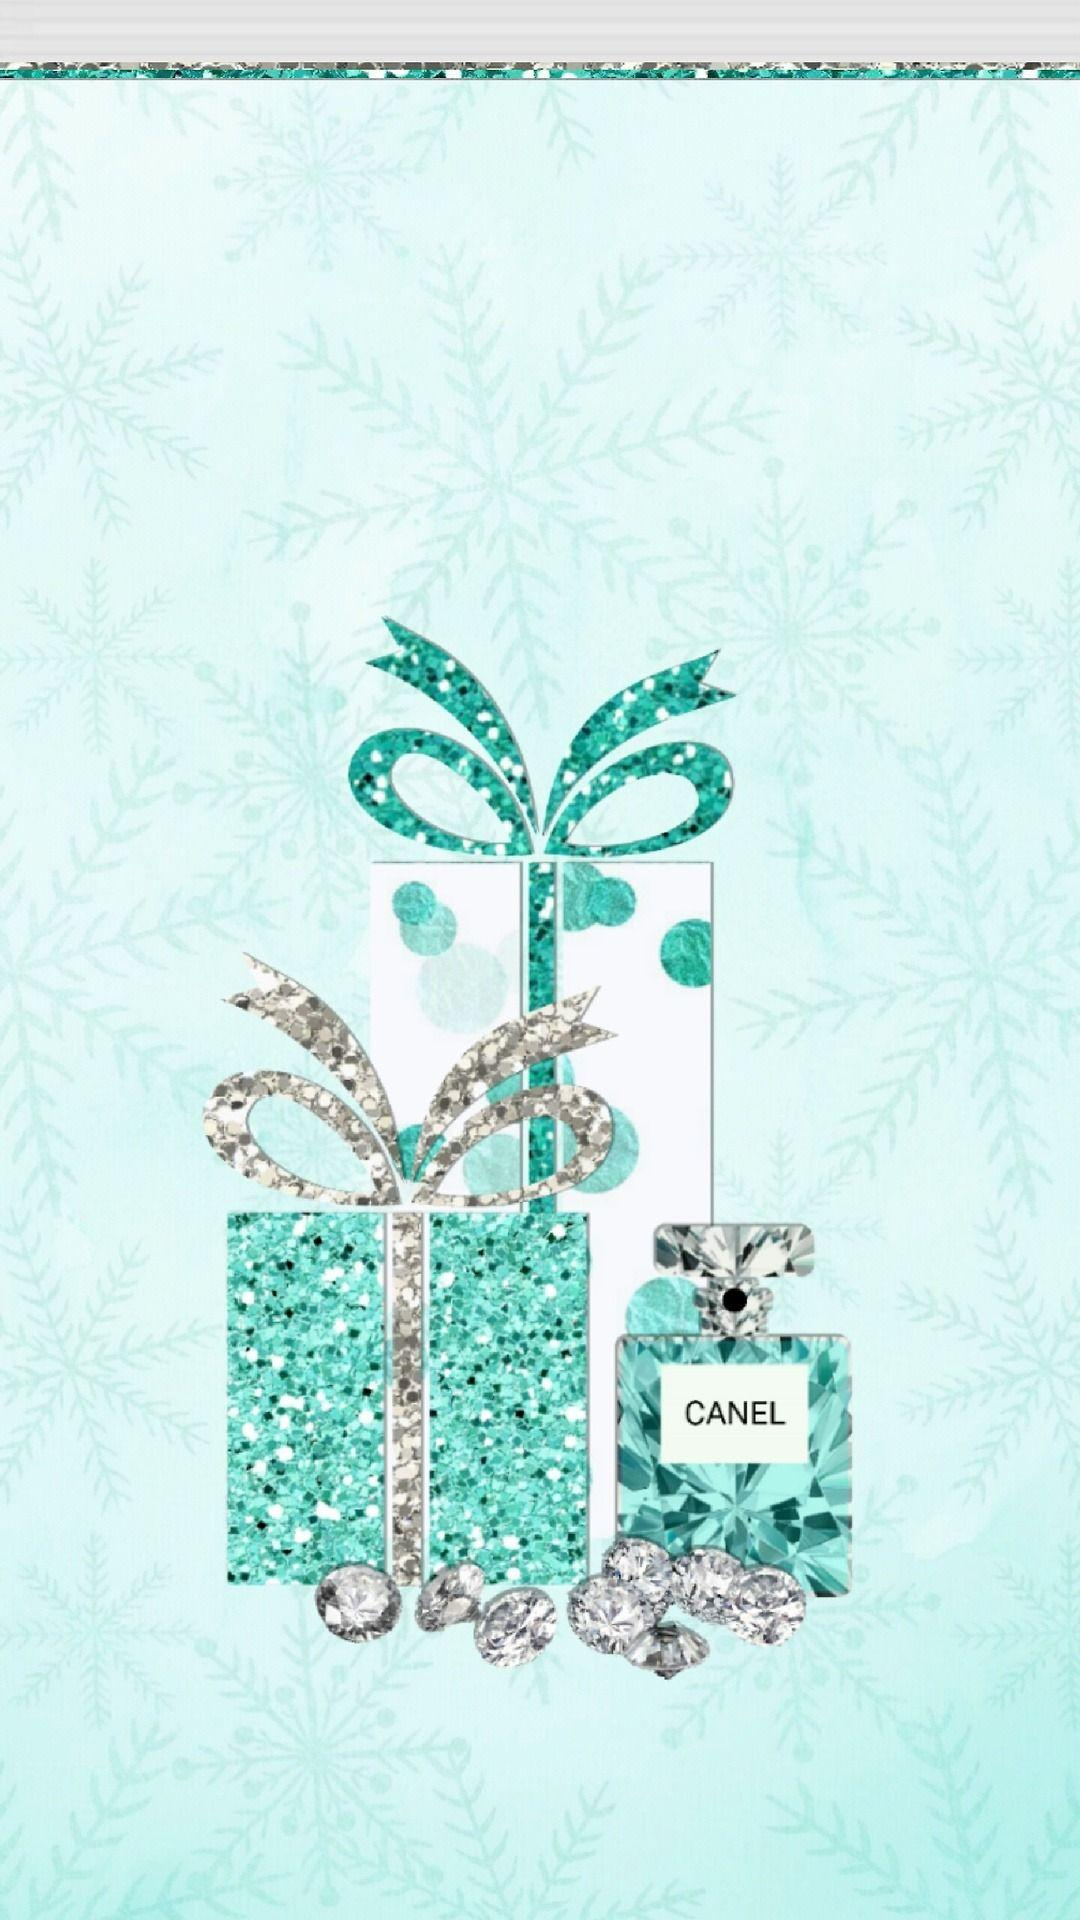 ❄WALLPAPERS❄ — Tiffany Christmas. | TÉL - WINTER | Pinterest ...